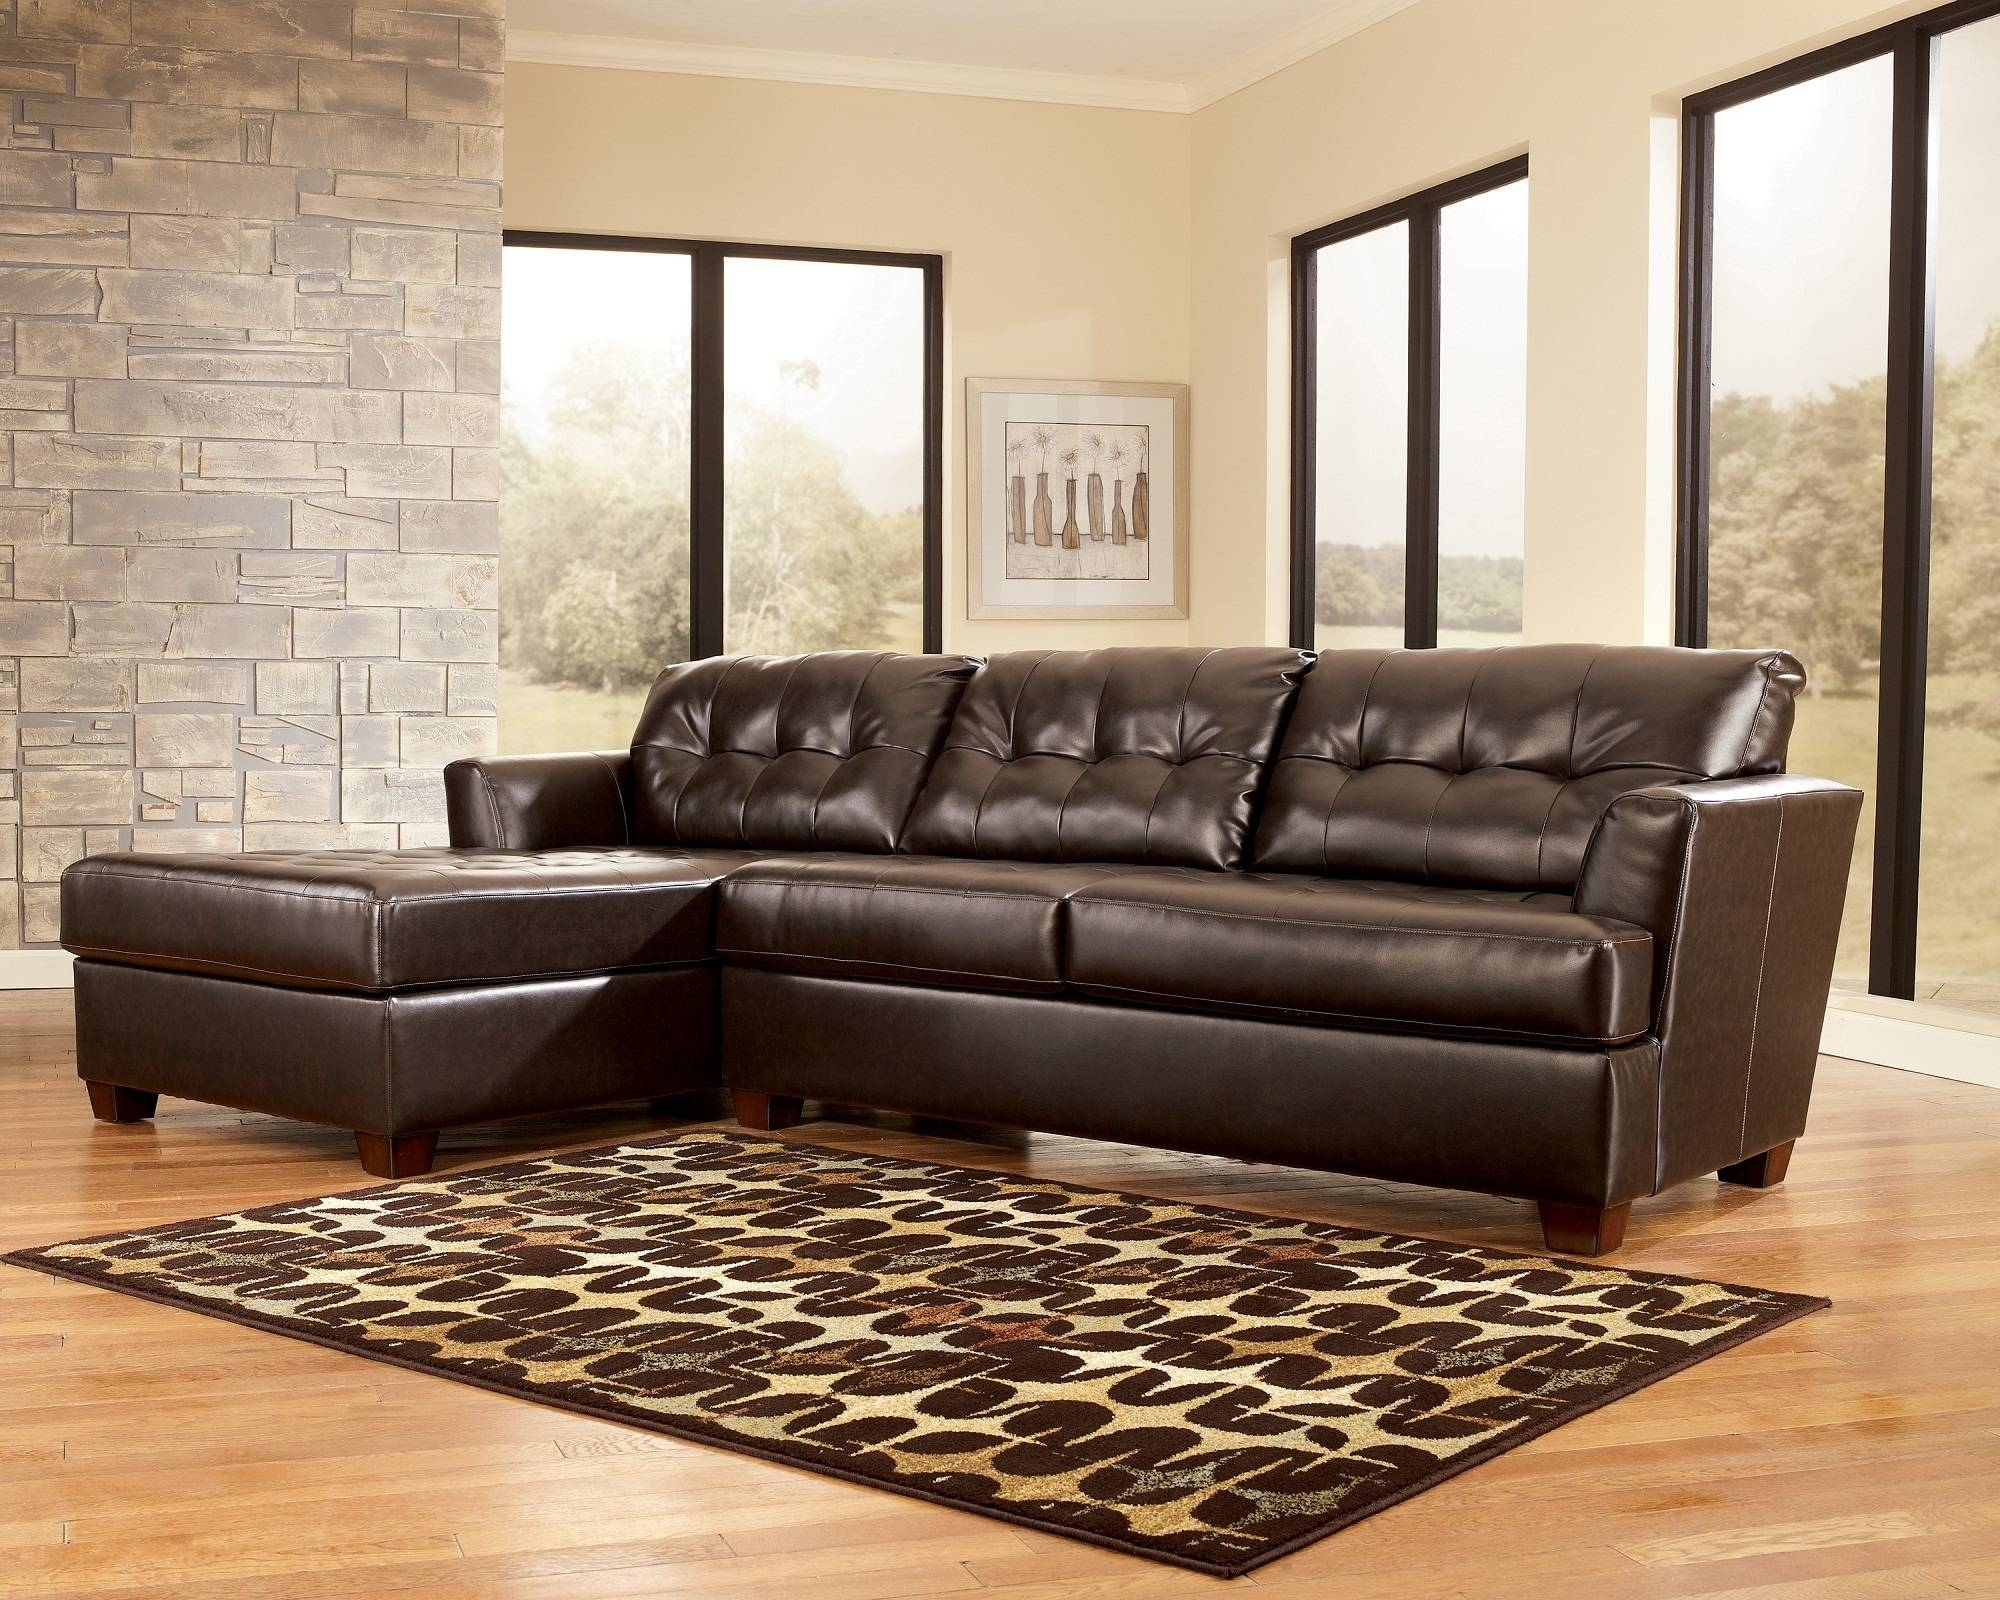 Walls-Interiors - Part 50 with regard to Black Leather Sectional Sleeper Sofas (Image 28 of 30)